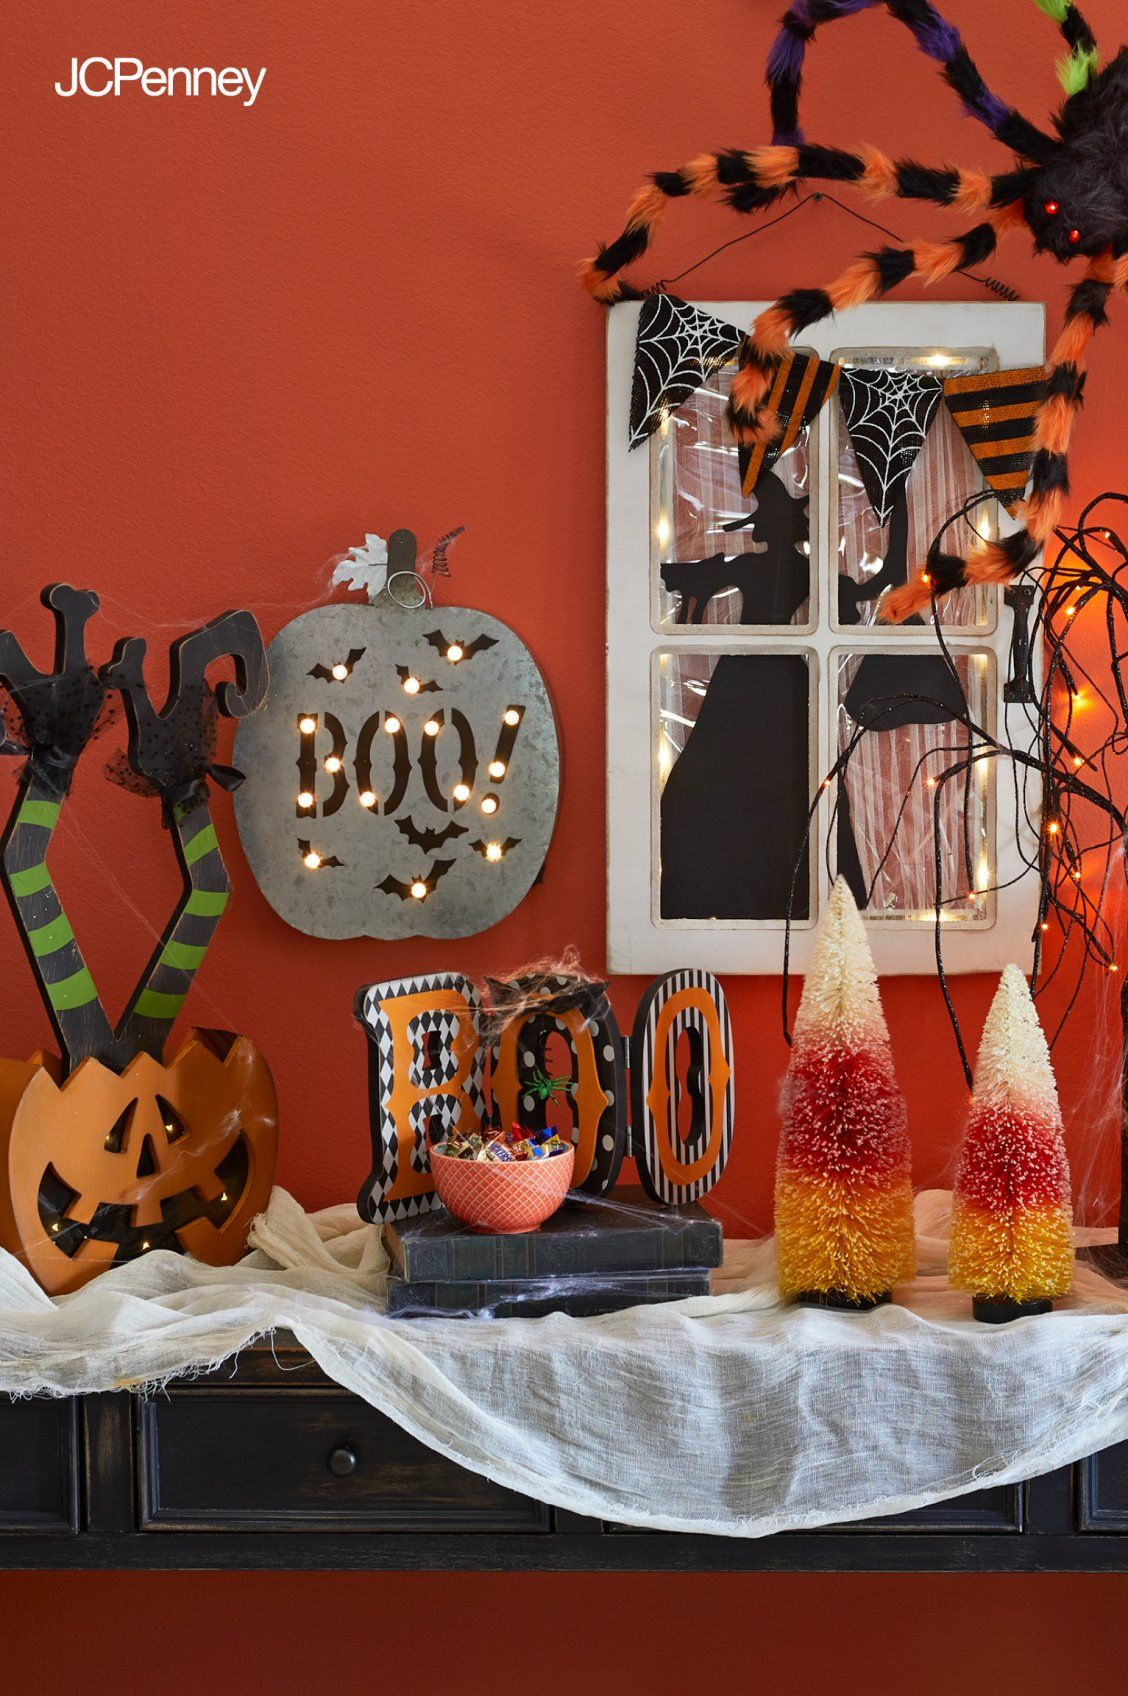 Make Your Halloween Party Spook Tacular With Colorful Decorations From Jcpenney Pumpkins Witches Signs